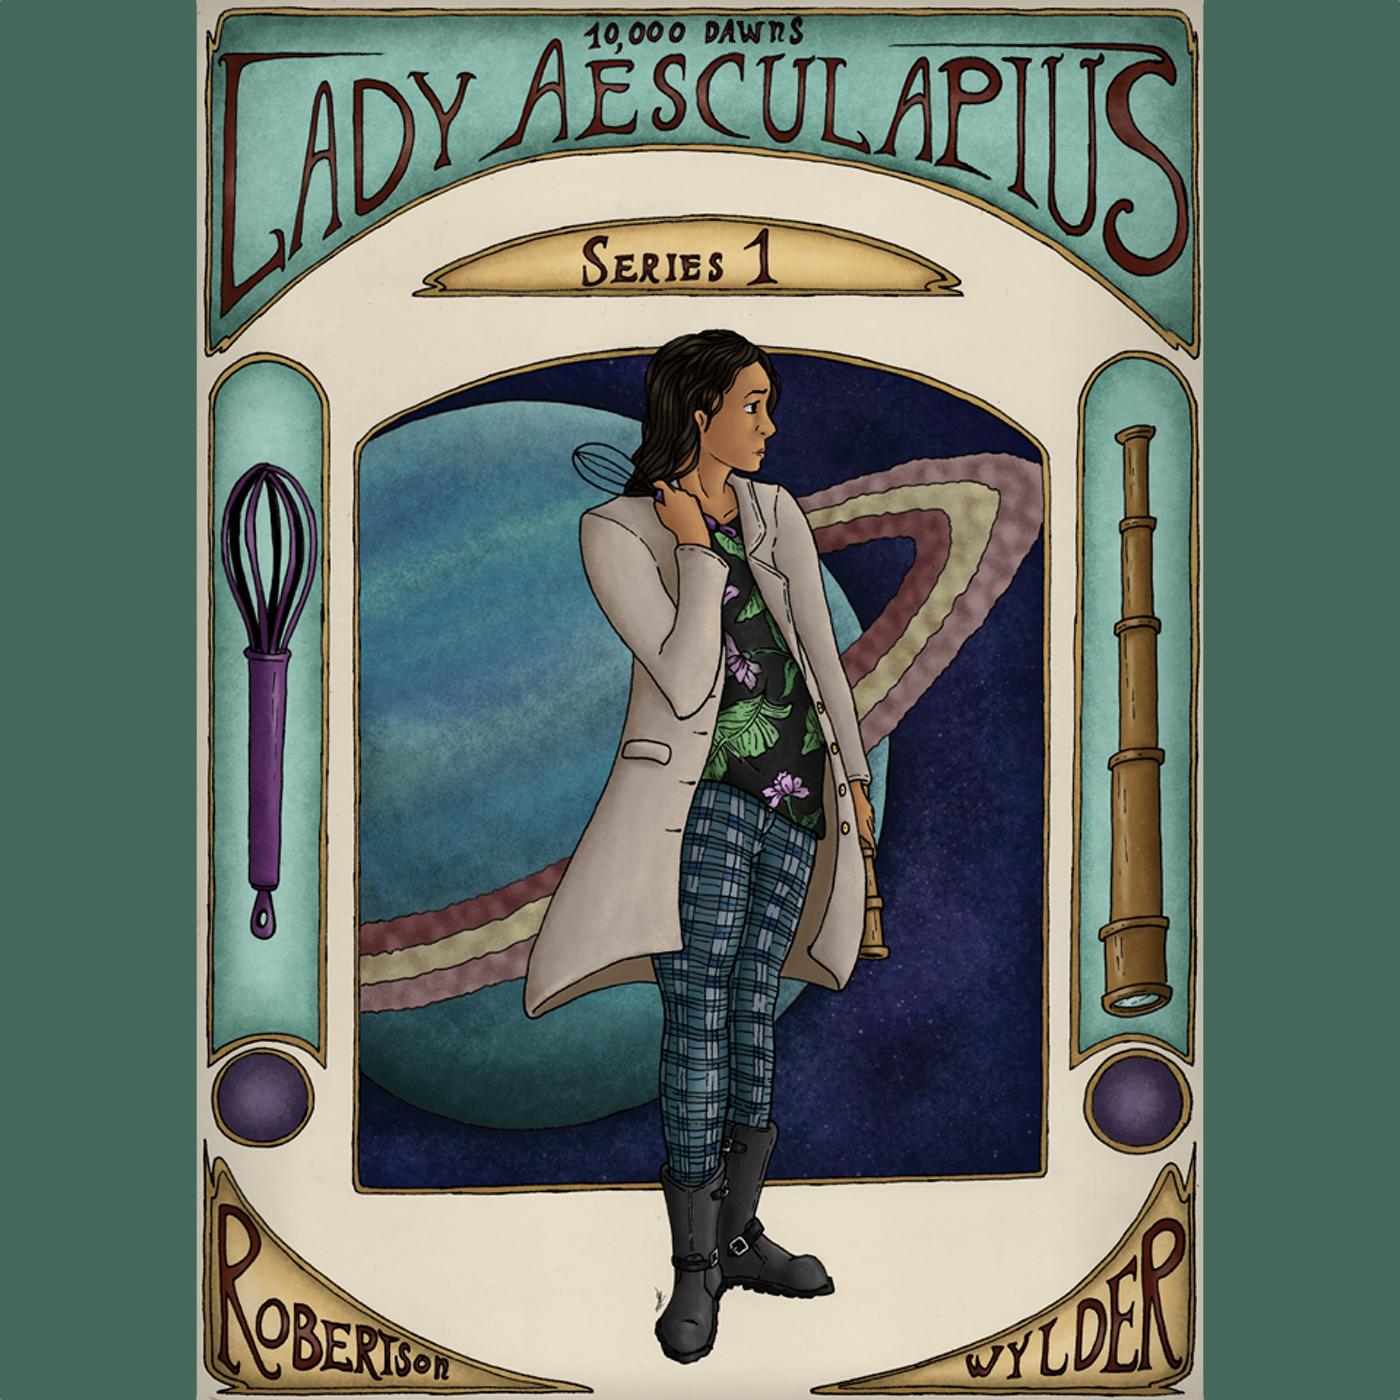 Lady Aesculapius show art